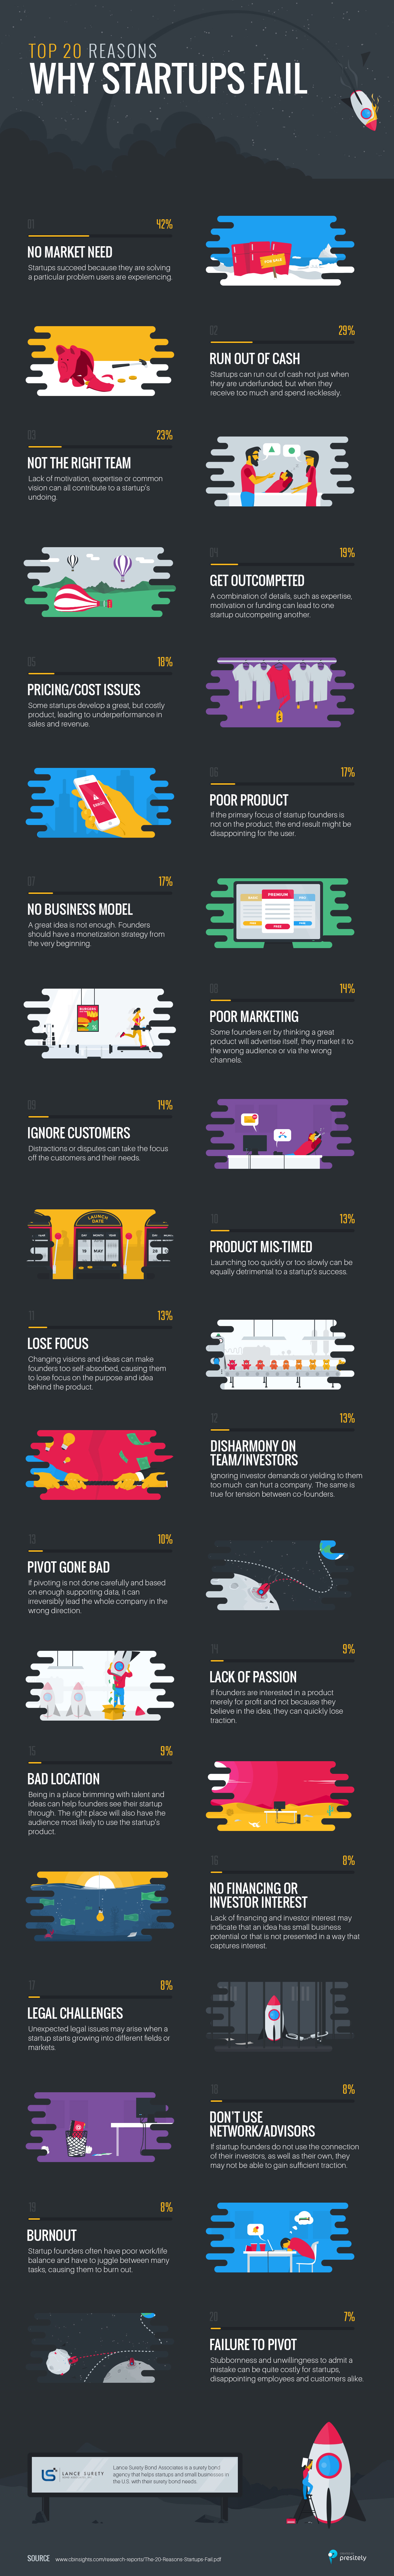 Business Failure infographic